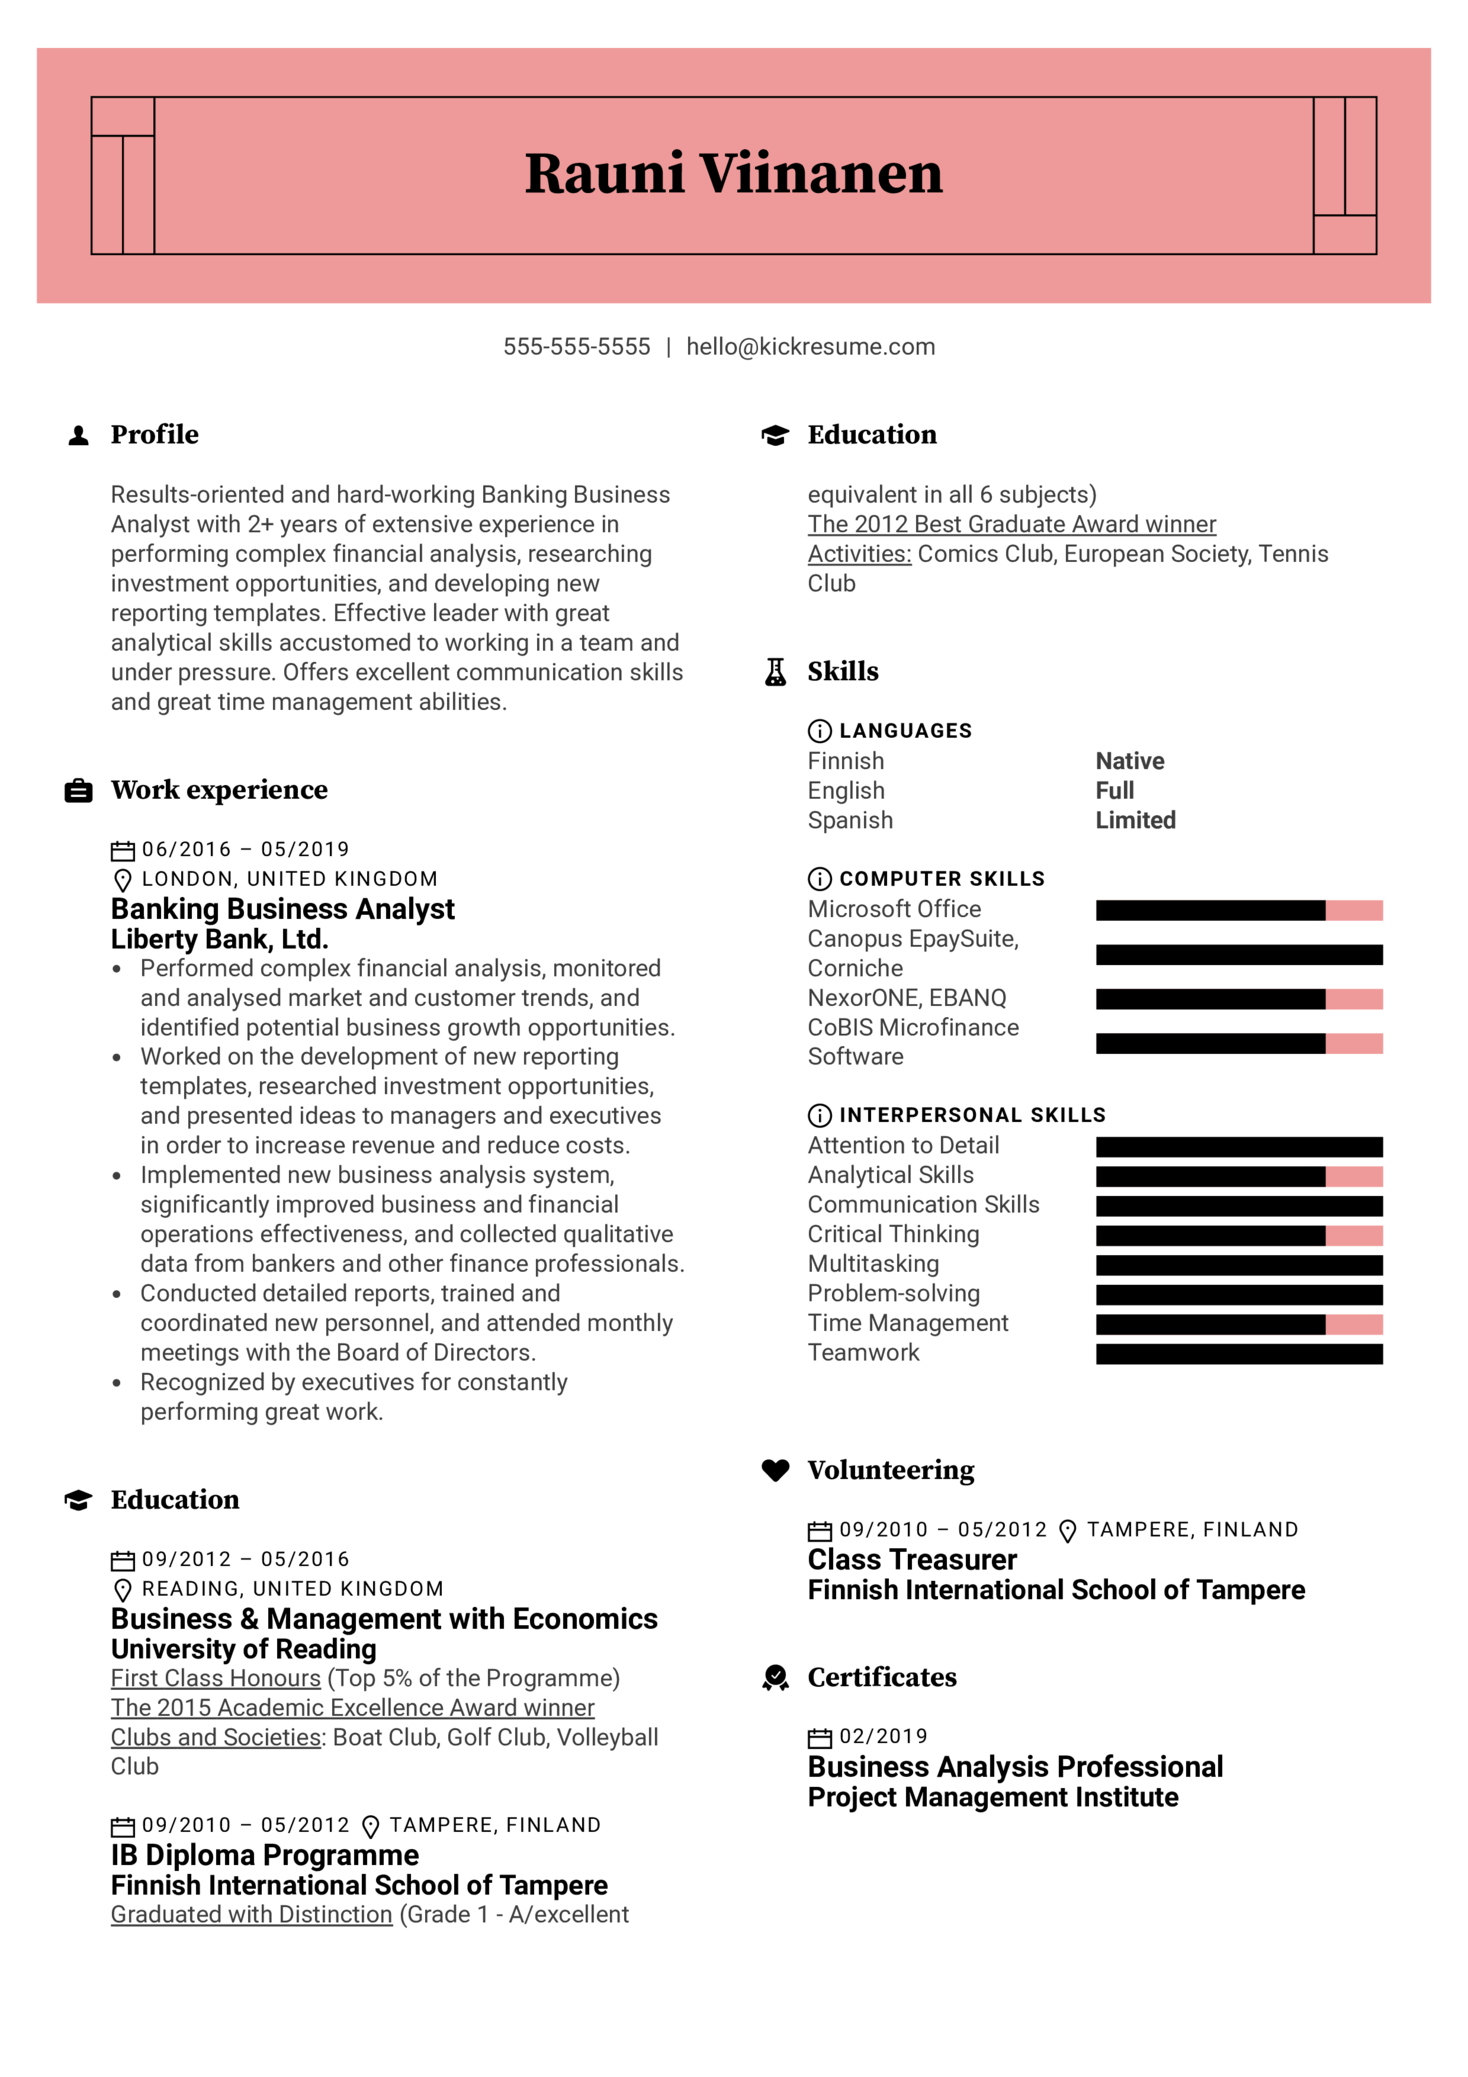 Banking Business Analyst Resume Sample Kickresume